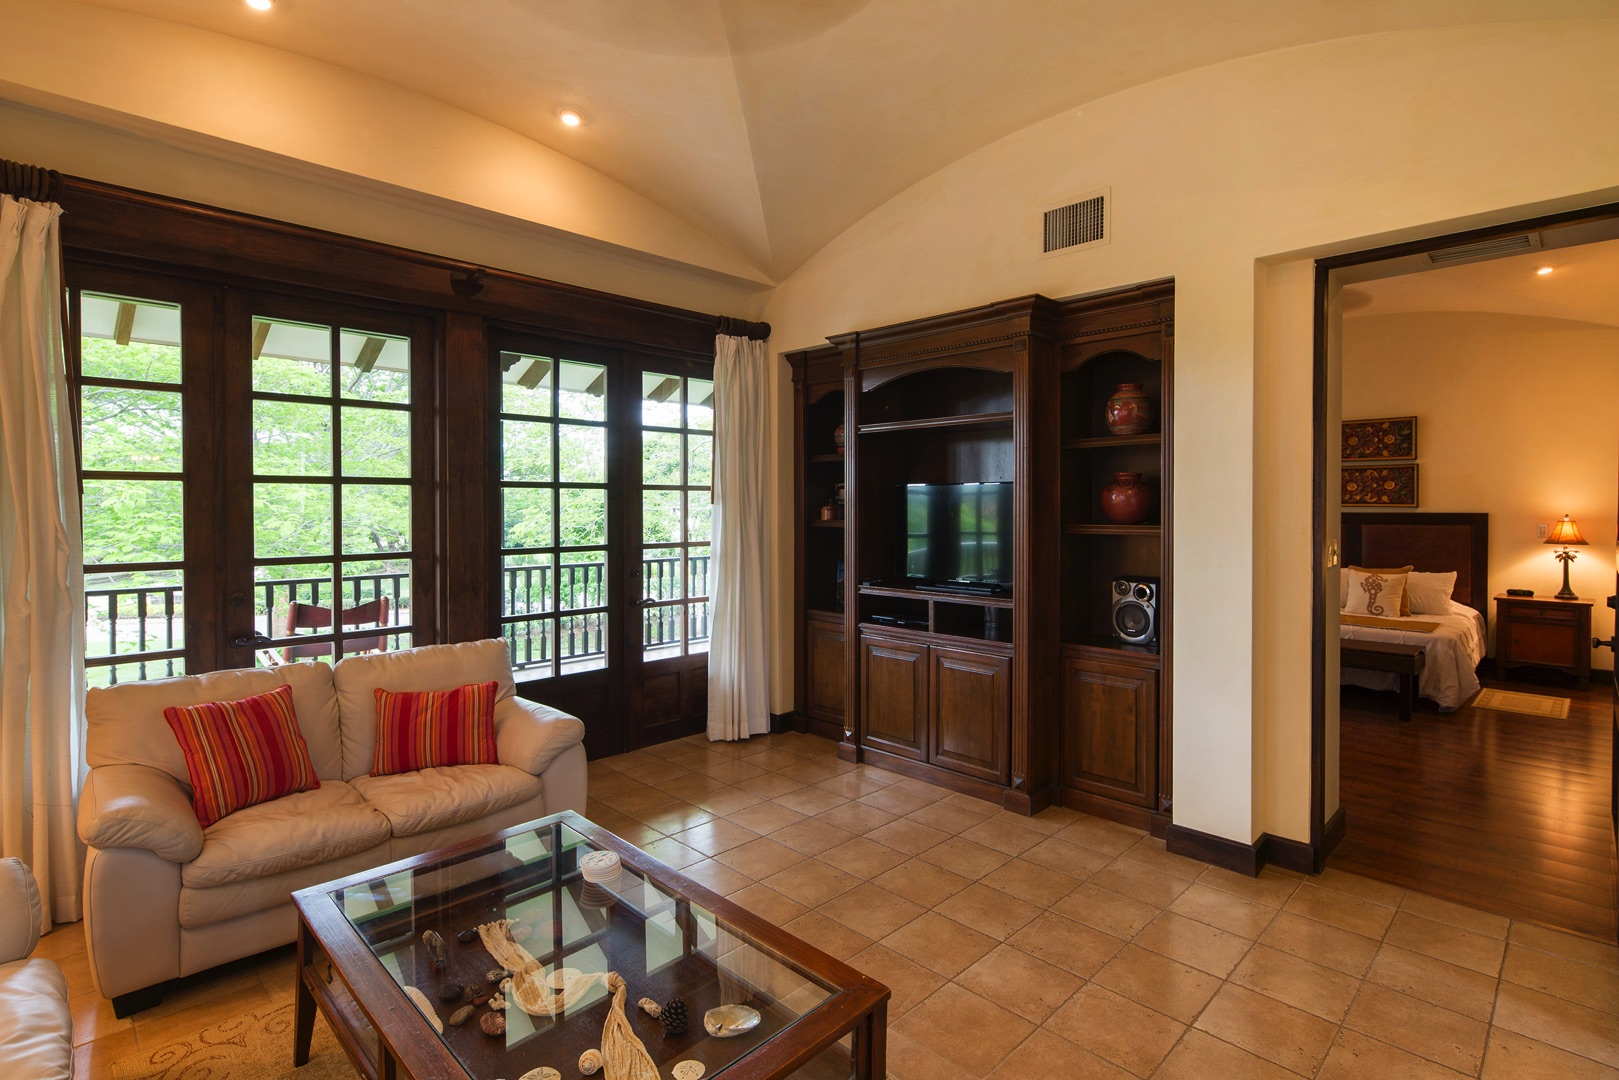 Access to balcony and master bedroom